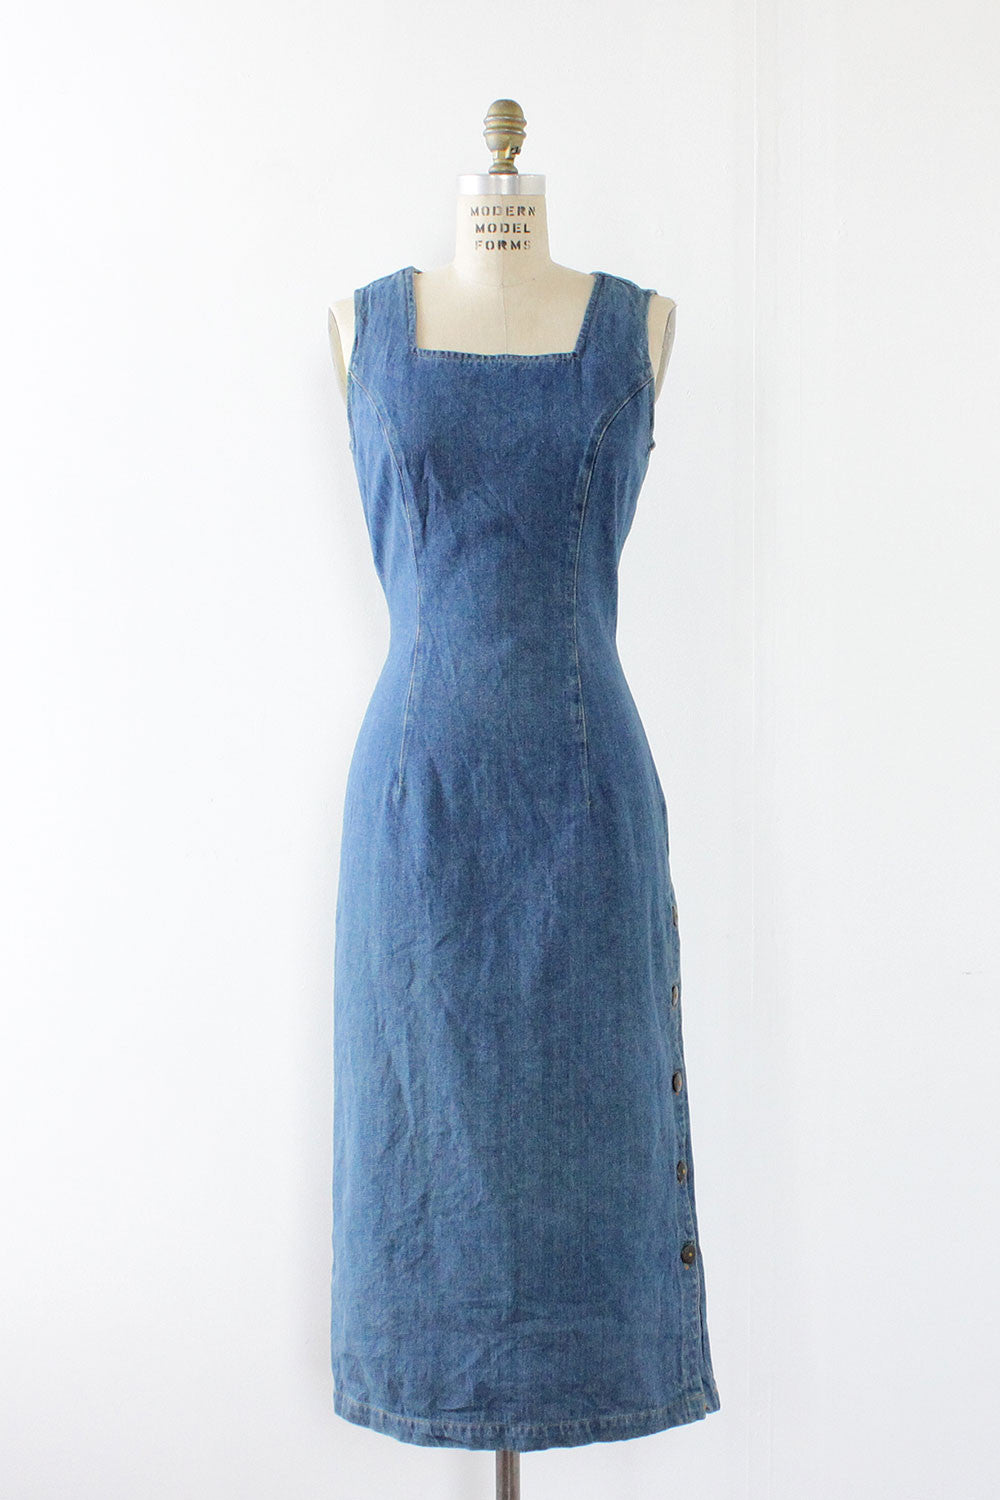 Chorus Denim Shift Dress S